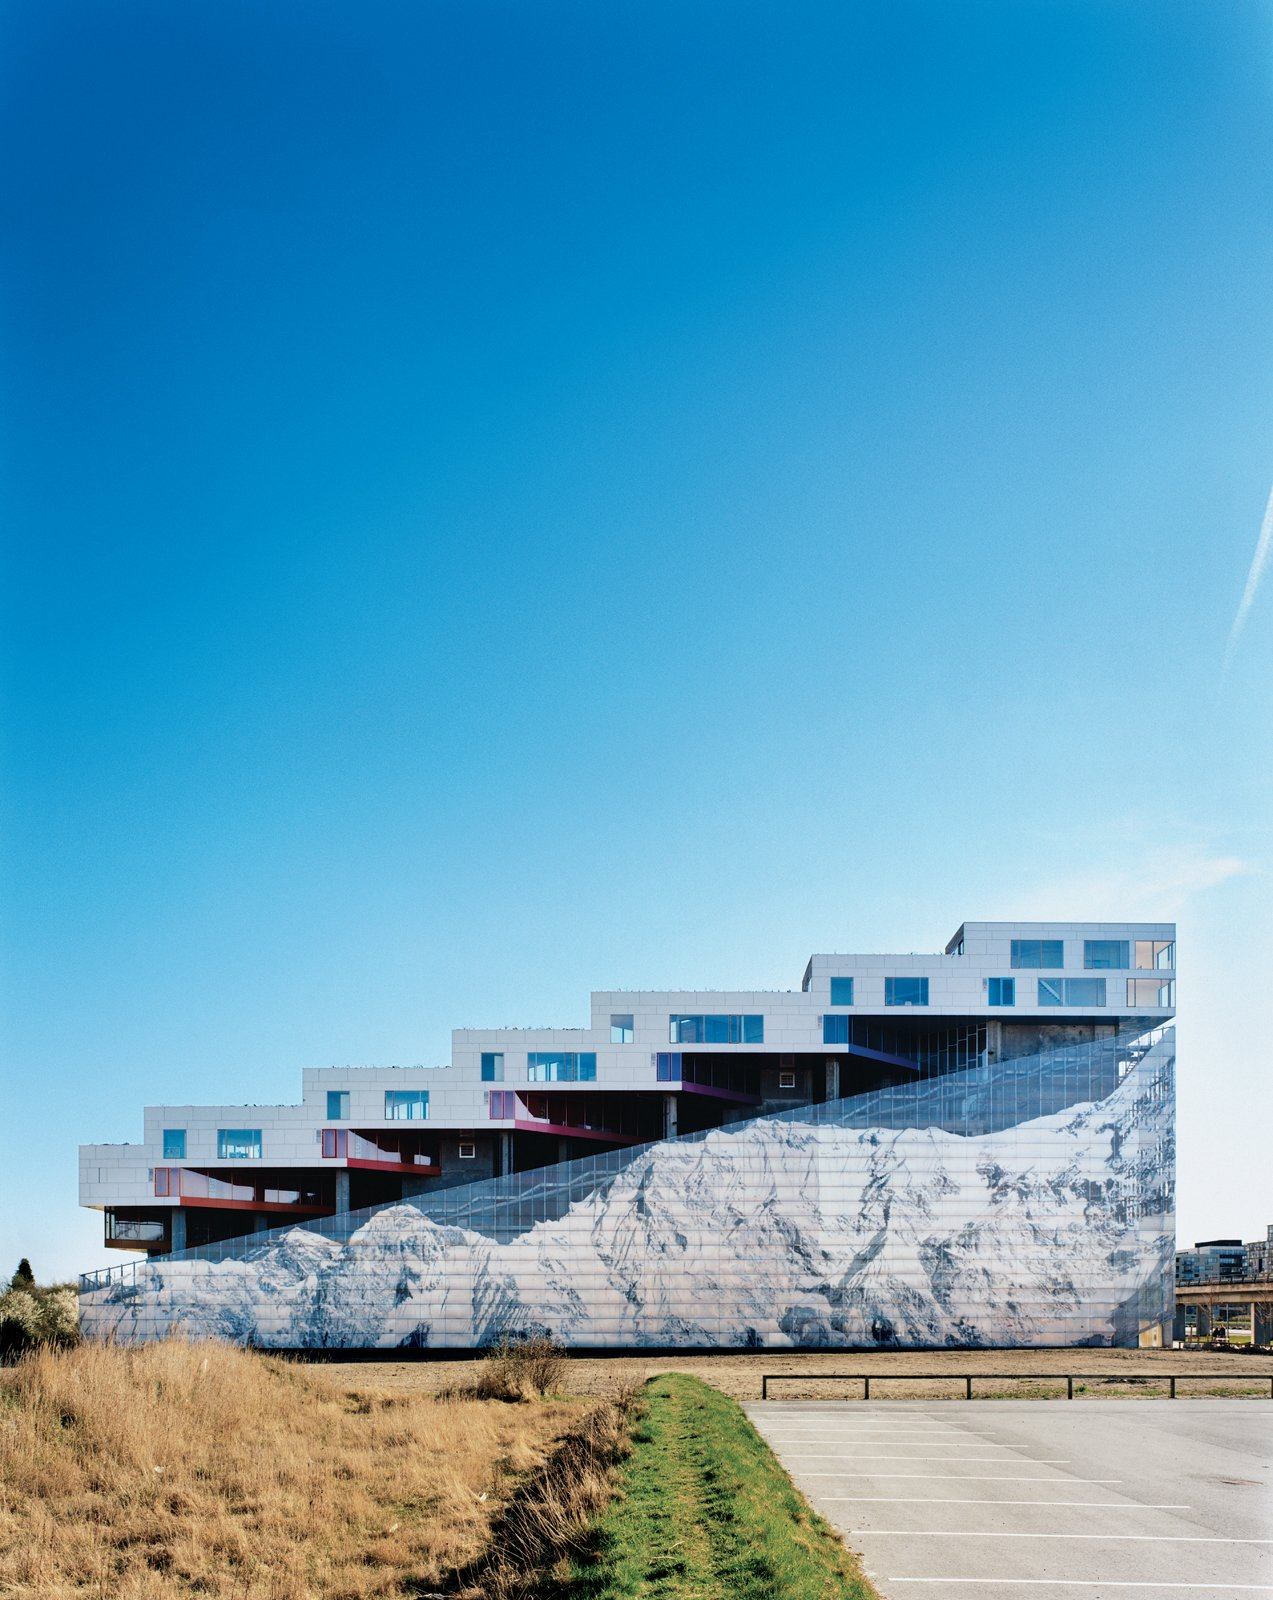 Completed in 2008, the Mountain Dwellings is the second of BIG's three projects in Ørestad, a new neighborhood in Copenhagen where development is attracting many new inhabitants. The result does looks like a mountain—hence the building's name and the inspiration for the mural of Mount Everest that adorns the 82-foot-high facade.  Modern Danish Homes We Love by Aileen Kwun from Mountain Dwellings Urban Development in Copenhagen